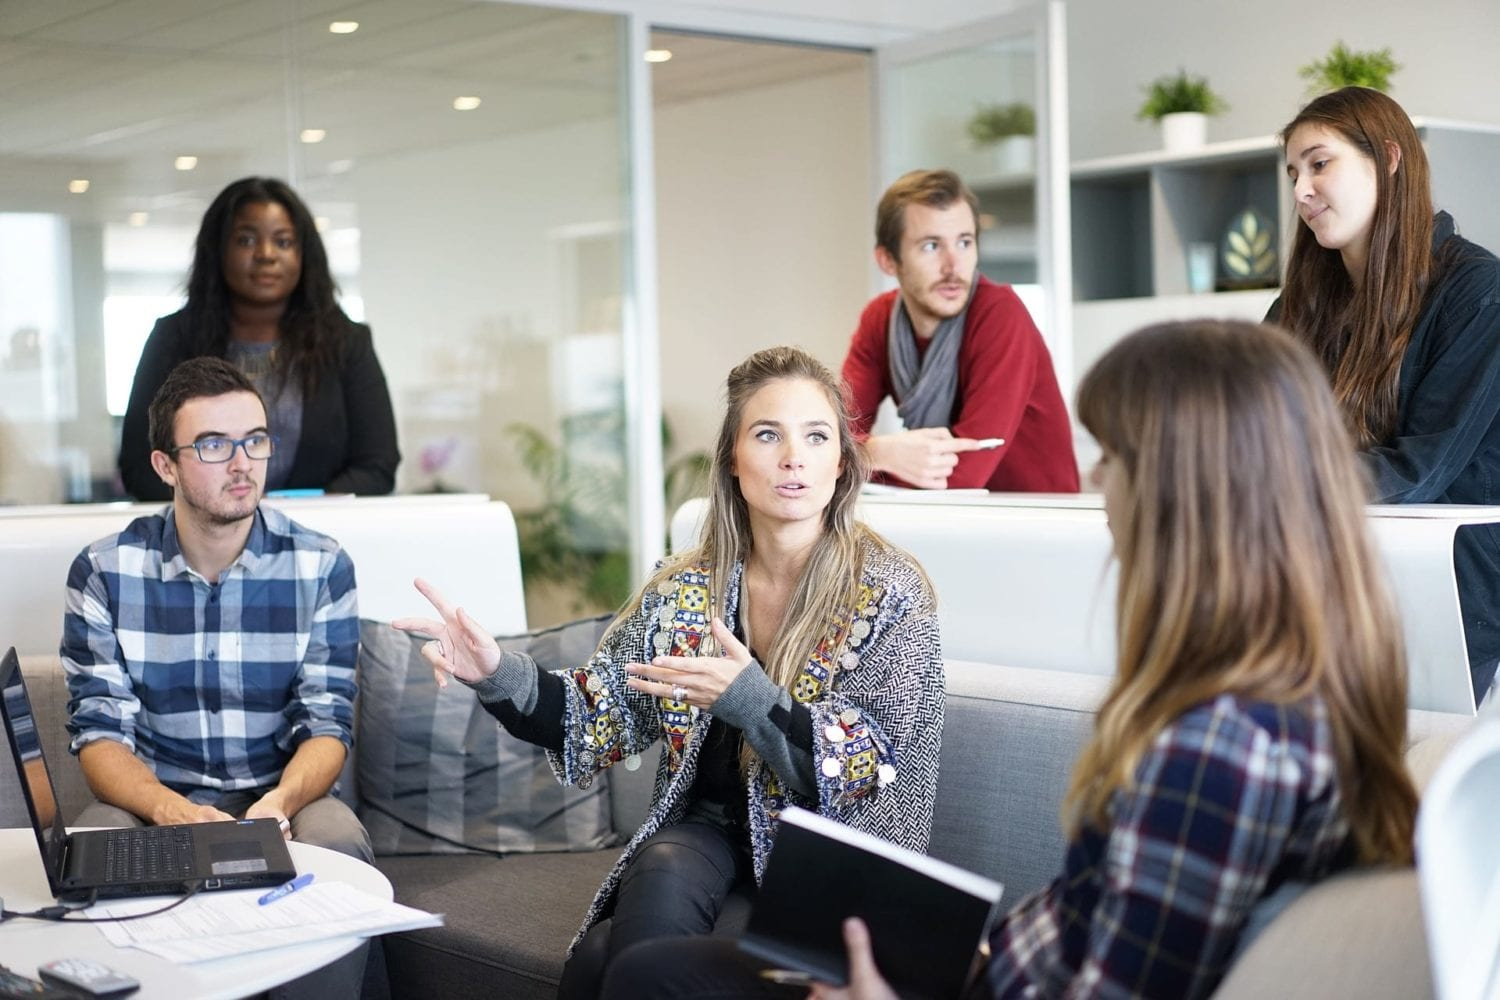 Young business people in an office discussing how to get more leads